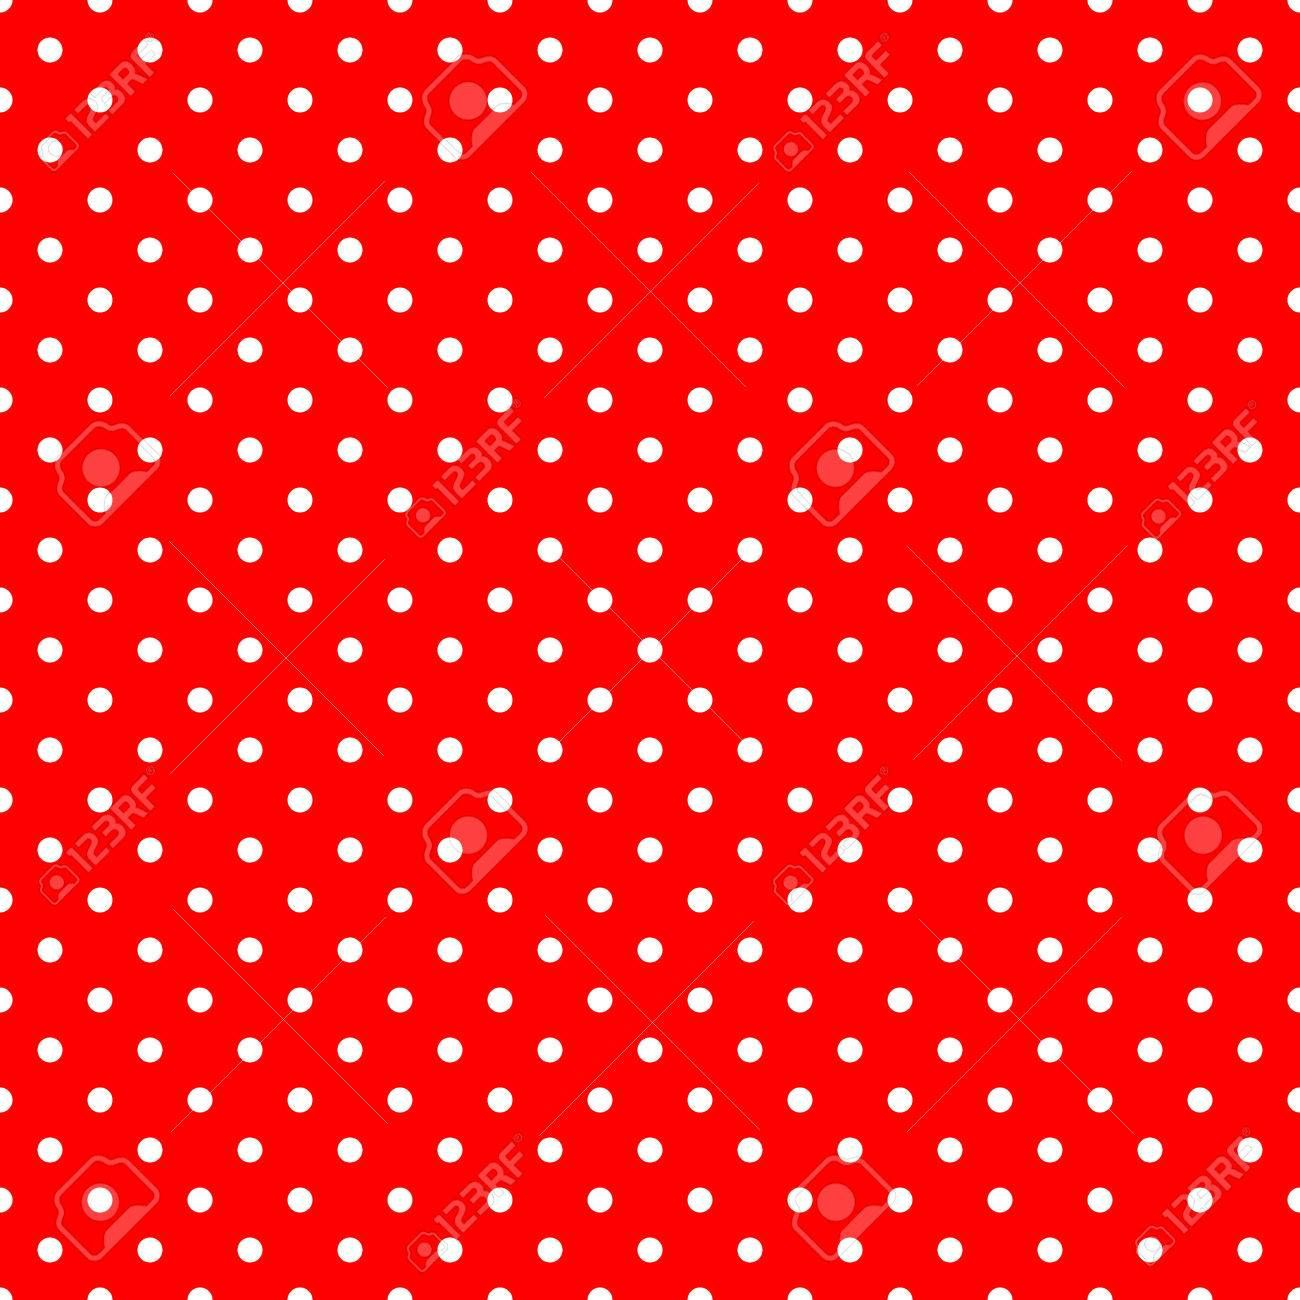 White Polka Dots On Red Background Large Seamless Pattern Stock Photo Spon Red Background Dots Vector Character Design Seamless Patterns Kids Patterns